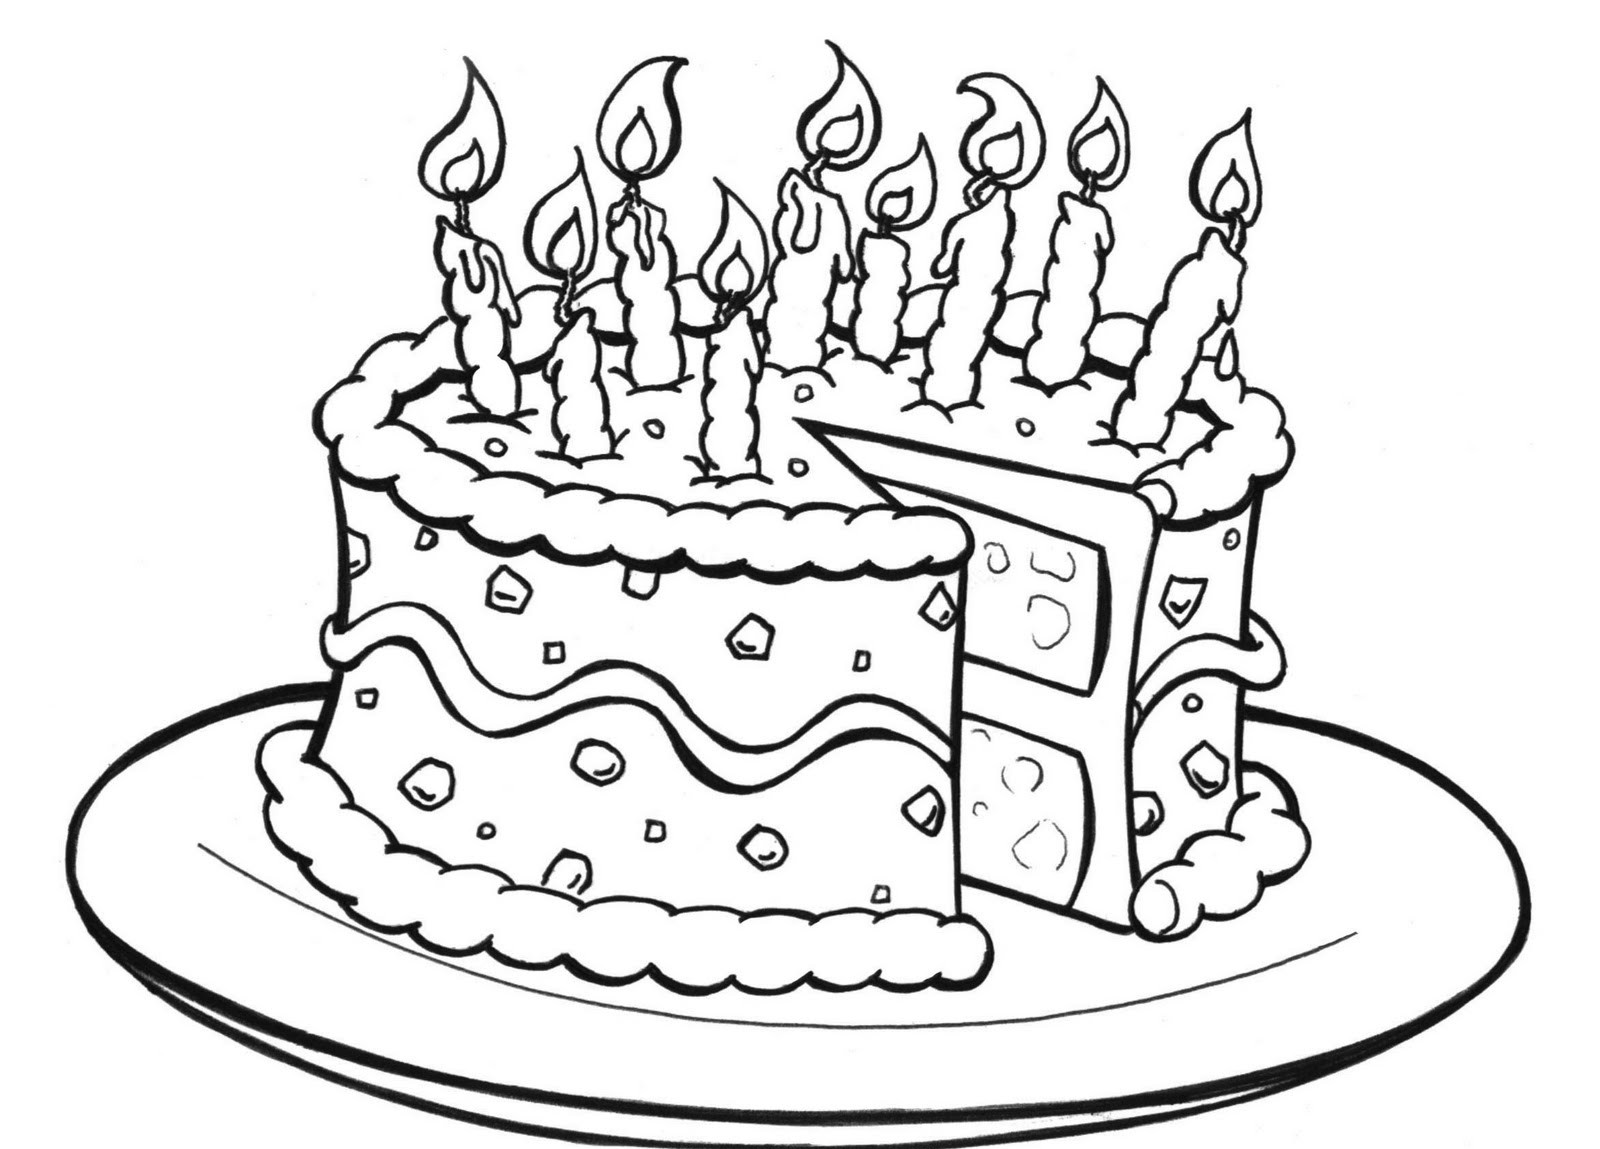 cake coloring pages to print free printable birthday cake coloring pages for kids print coloring to pages cake